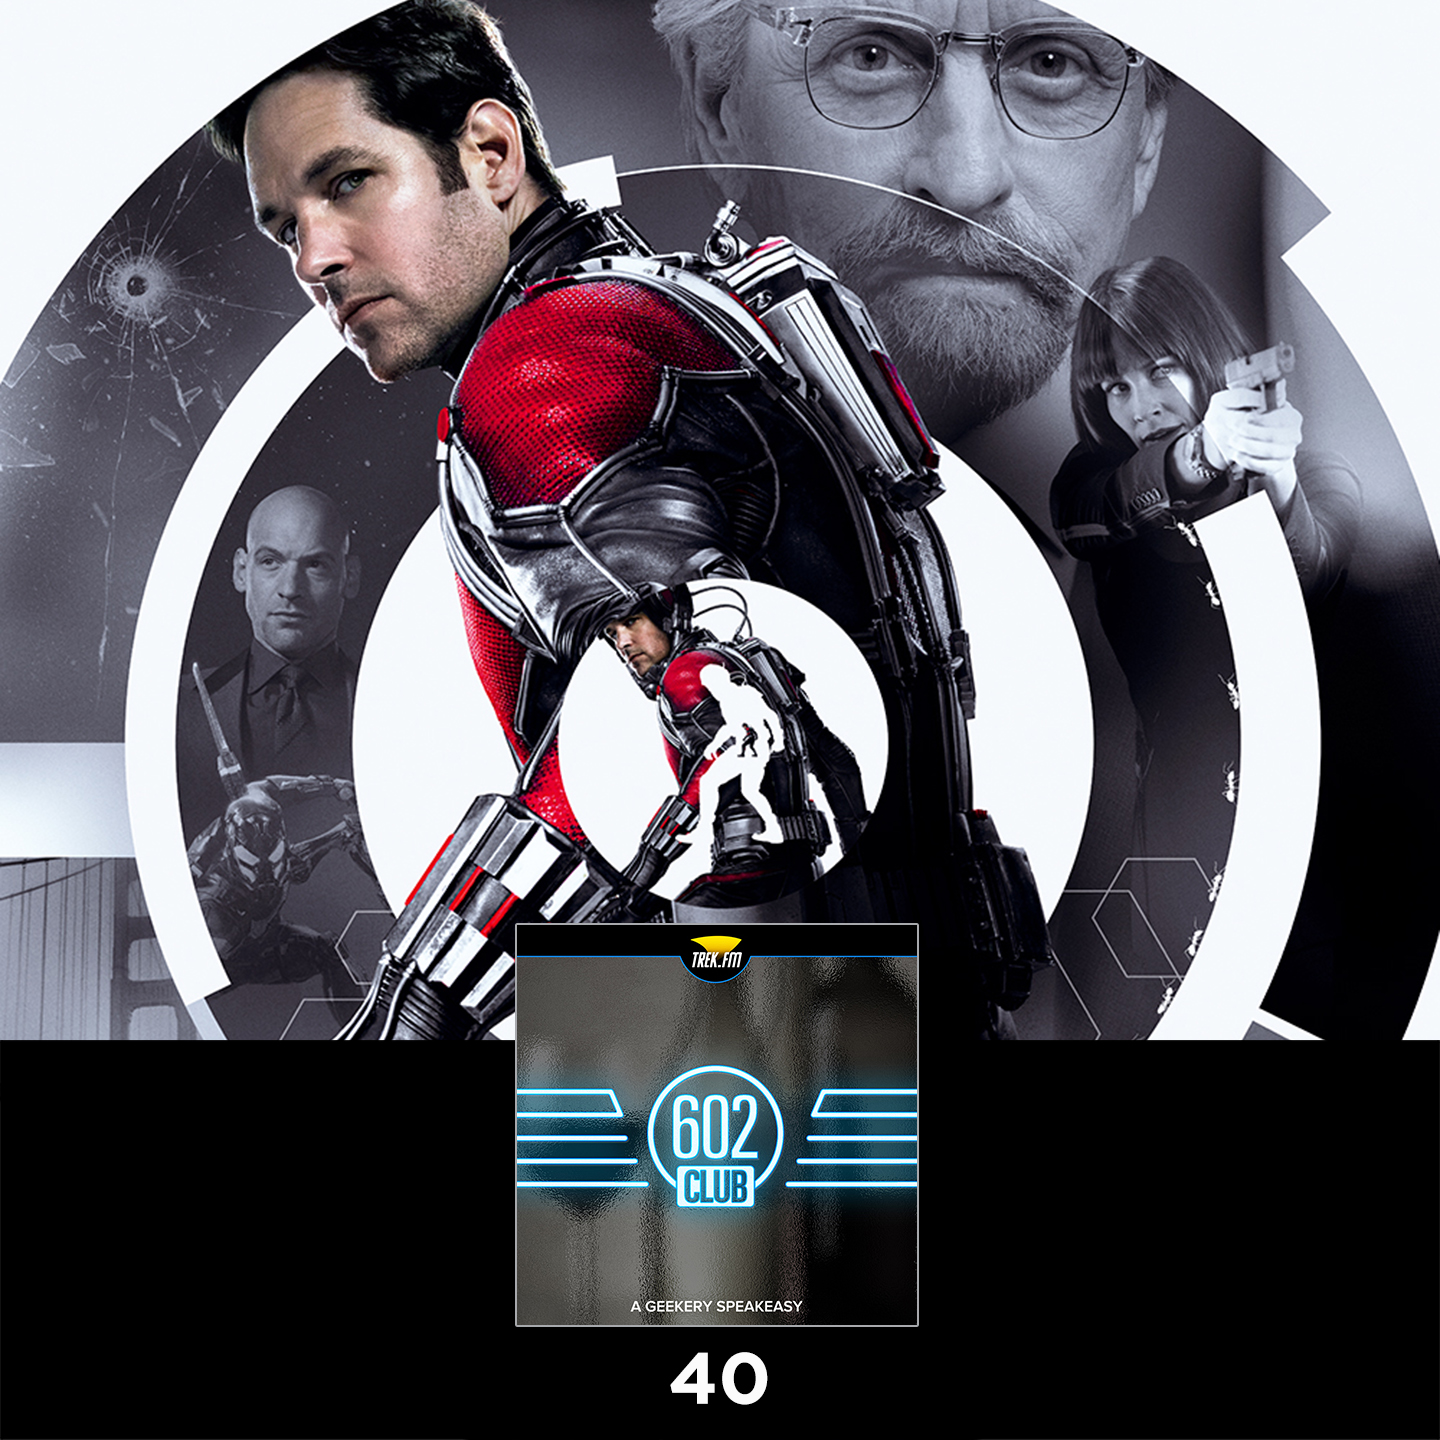 40: Iron Man's Little Brother